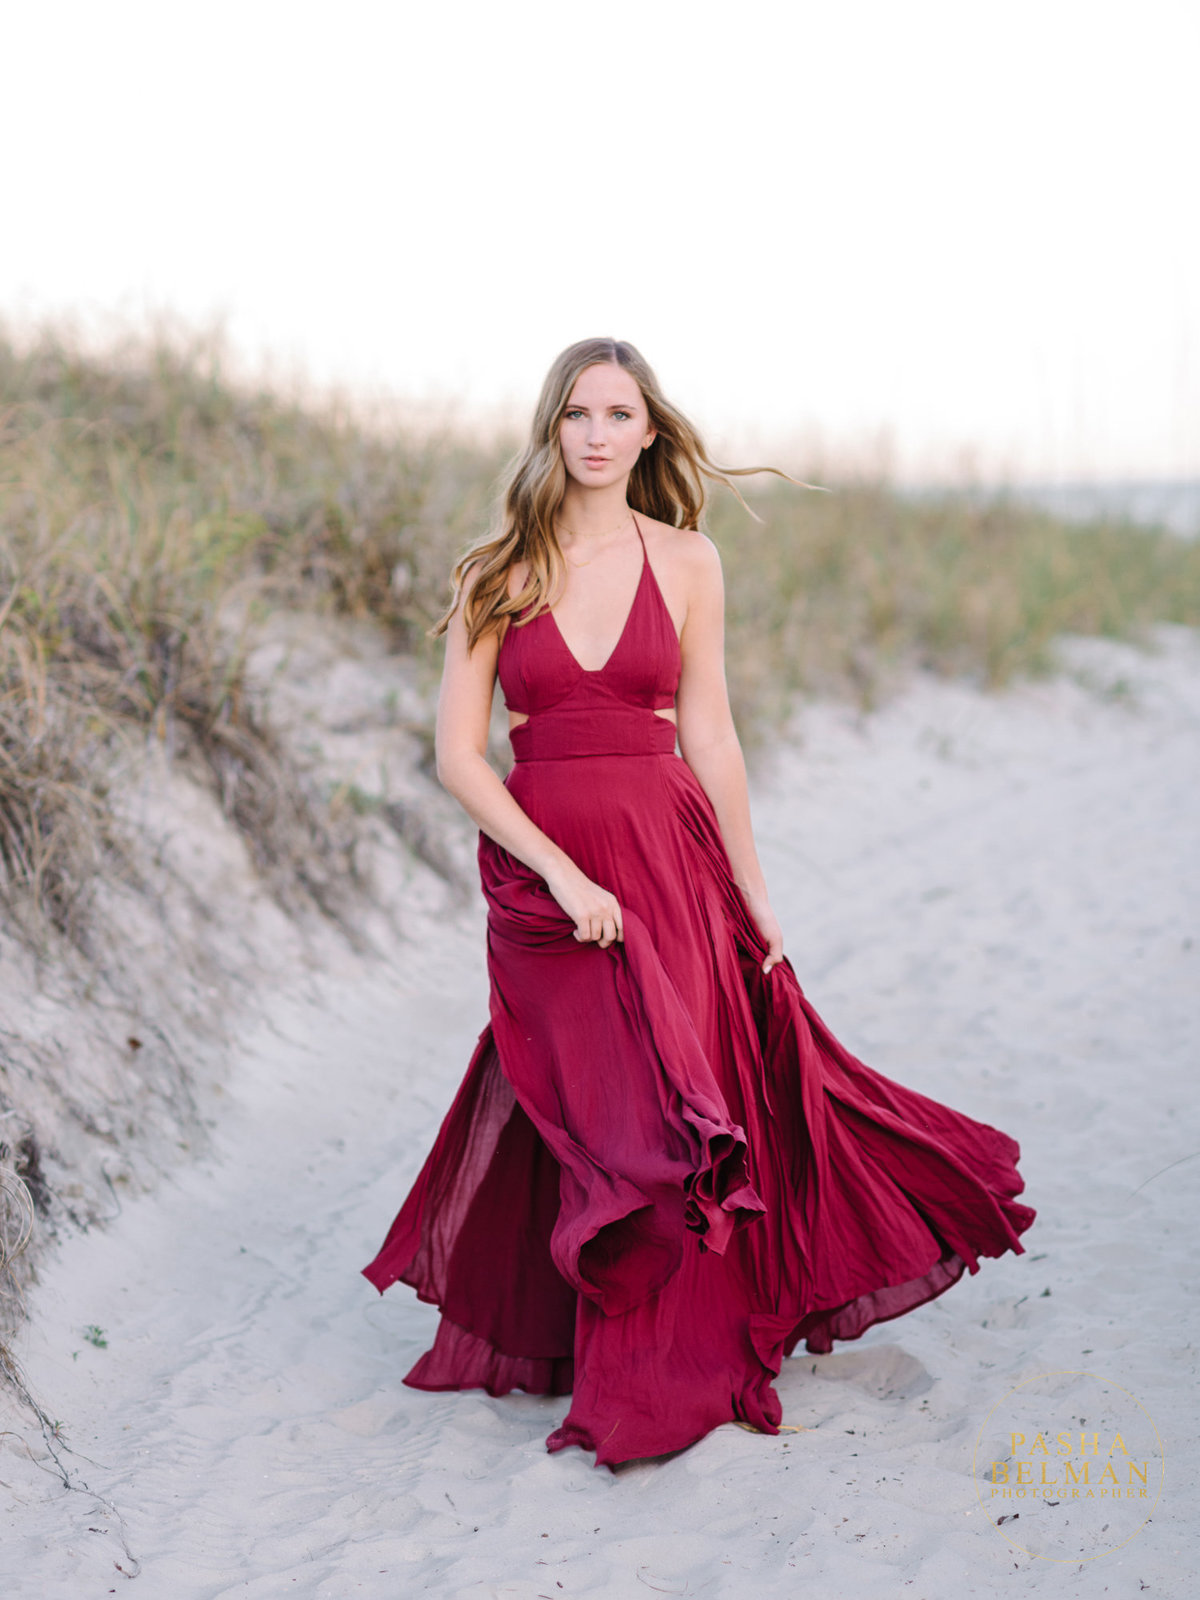 Myrtle Beach Senior Portraits and Pictures by Pasha Belman Photographer-20